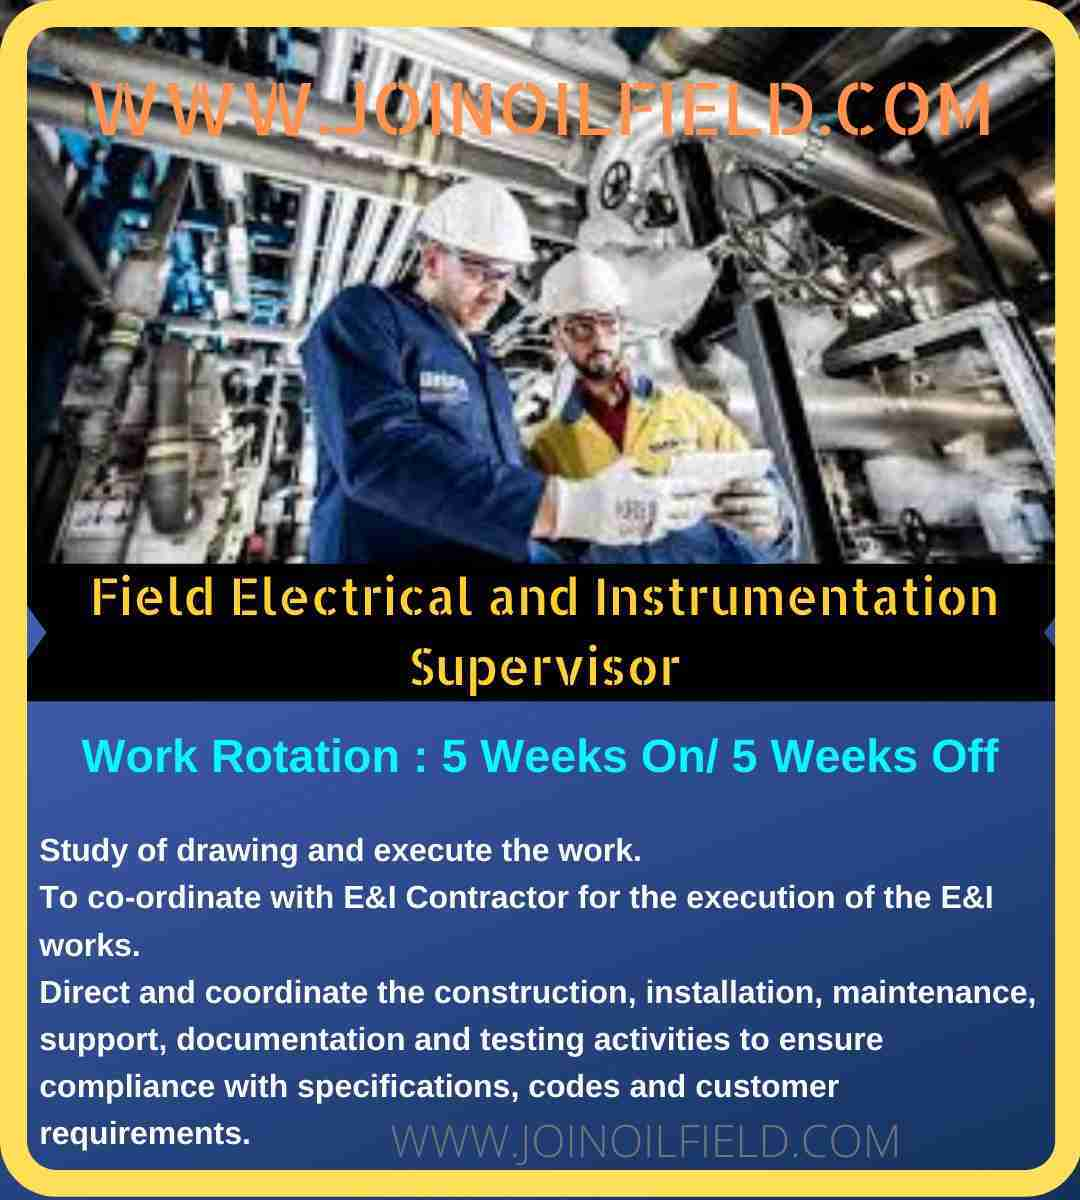 field electrical and instrumentation supervisor job join oilfield resume whatsapp image Resume Electrical And Instrumentation Supervisor Resume